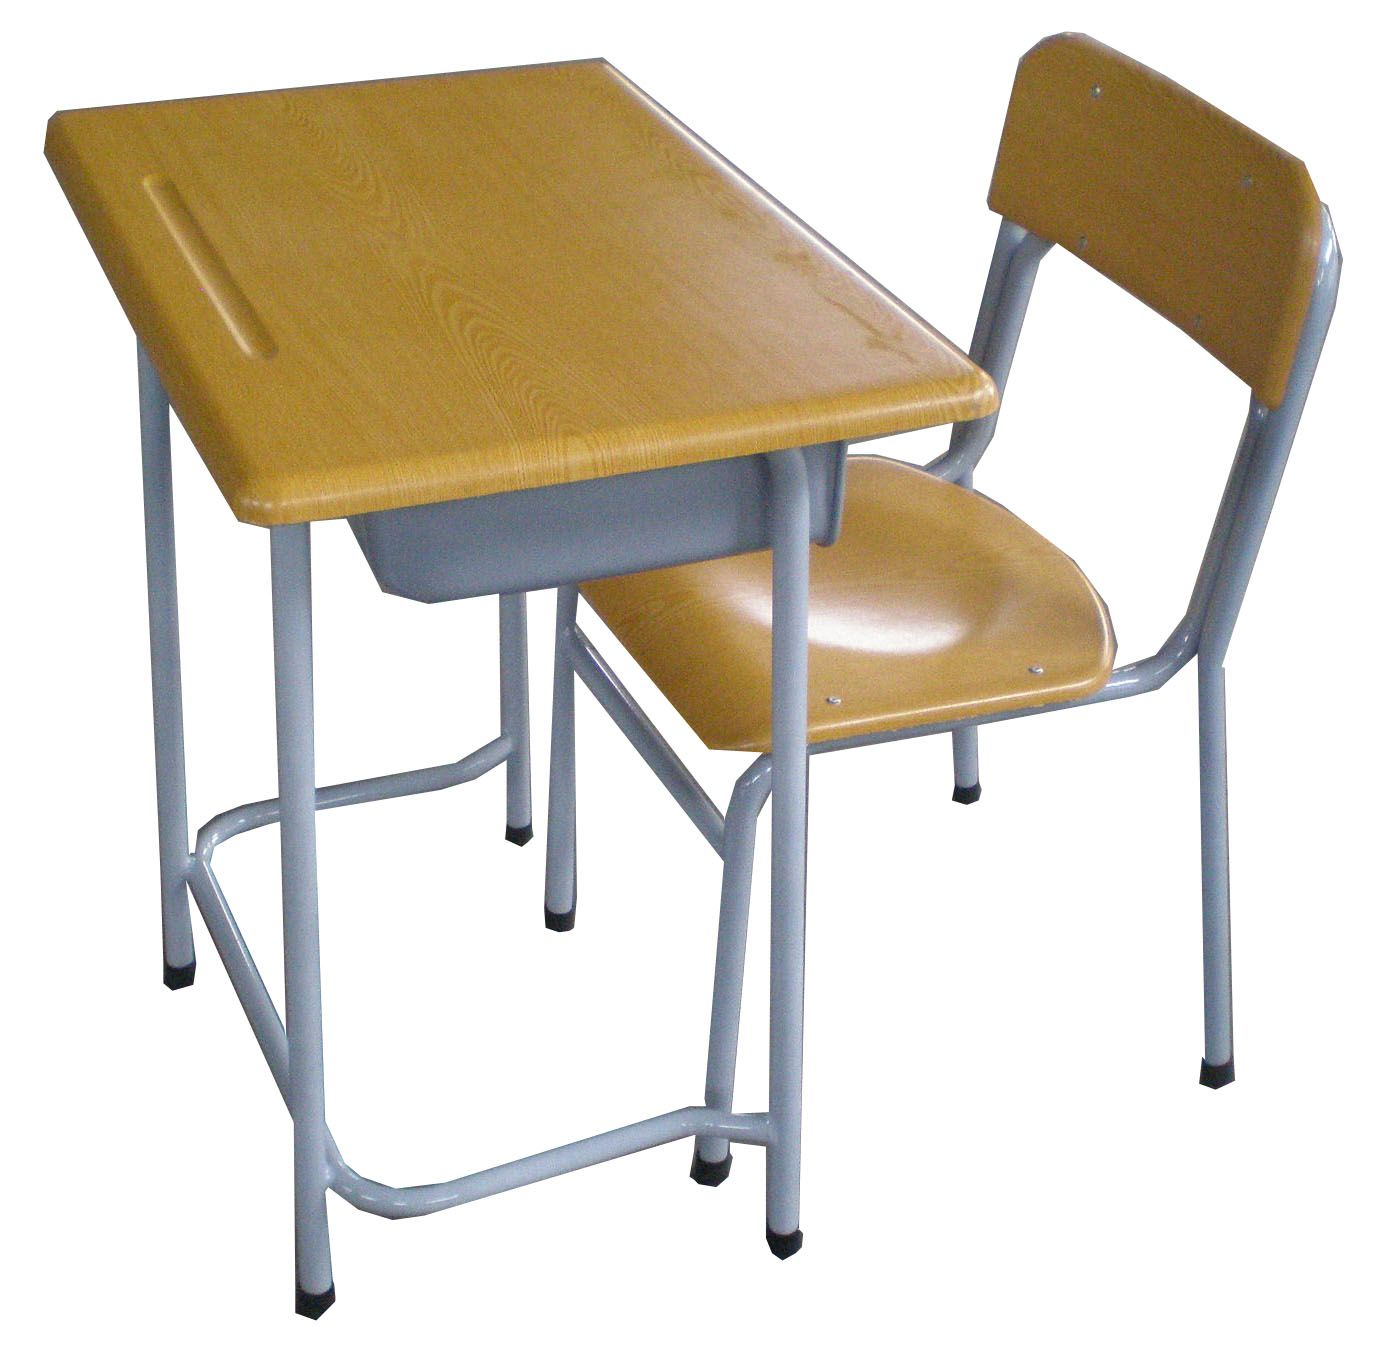 Classroom Furniture Dwg ~ School desk clip art imgkid the image kid has it